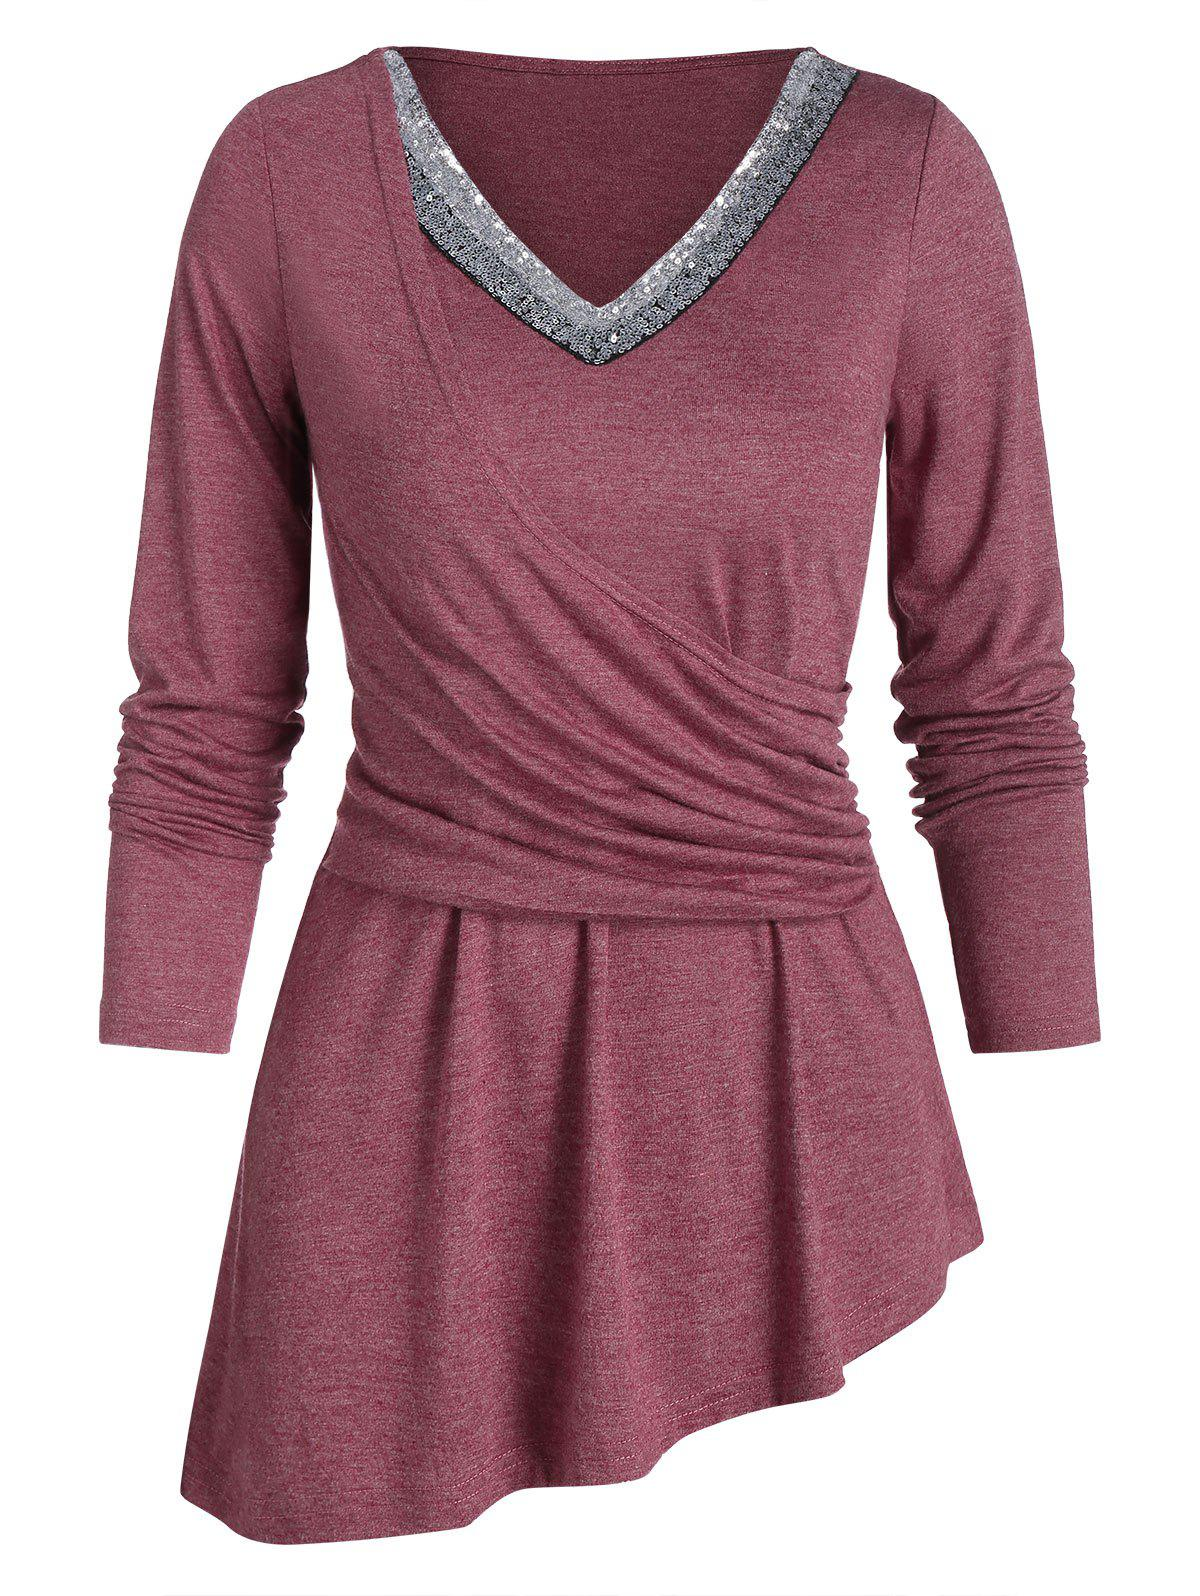 Longline Paillette V Neck High Low Long Sleeve Top - RED WINE XL